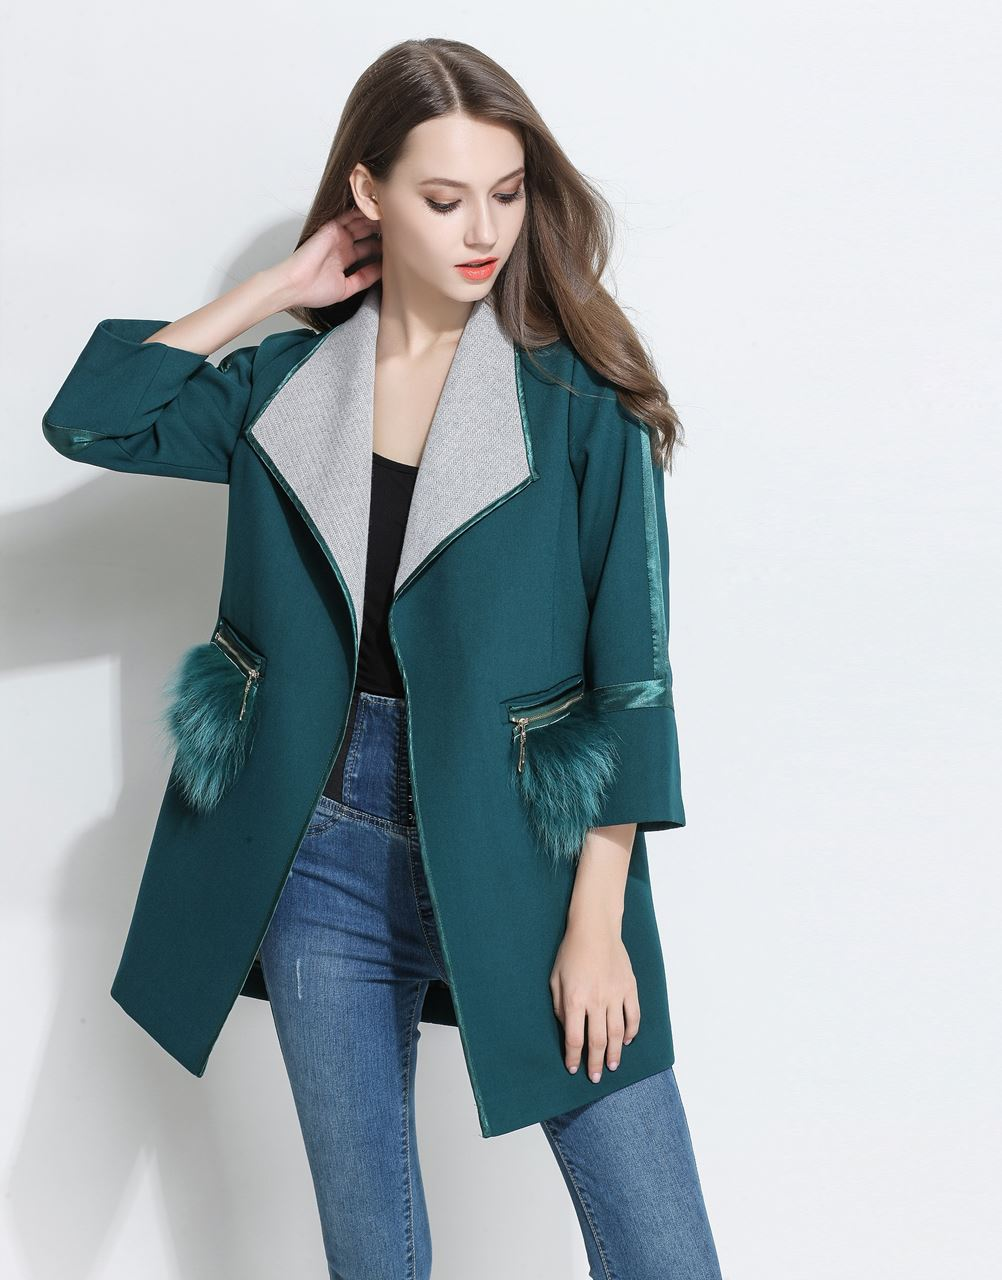 Comino Couture Green Faux Fur Pocket Coat * WAS £110*